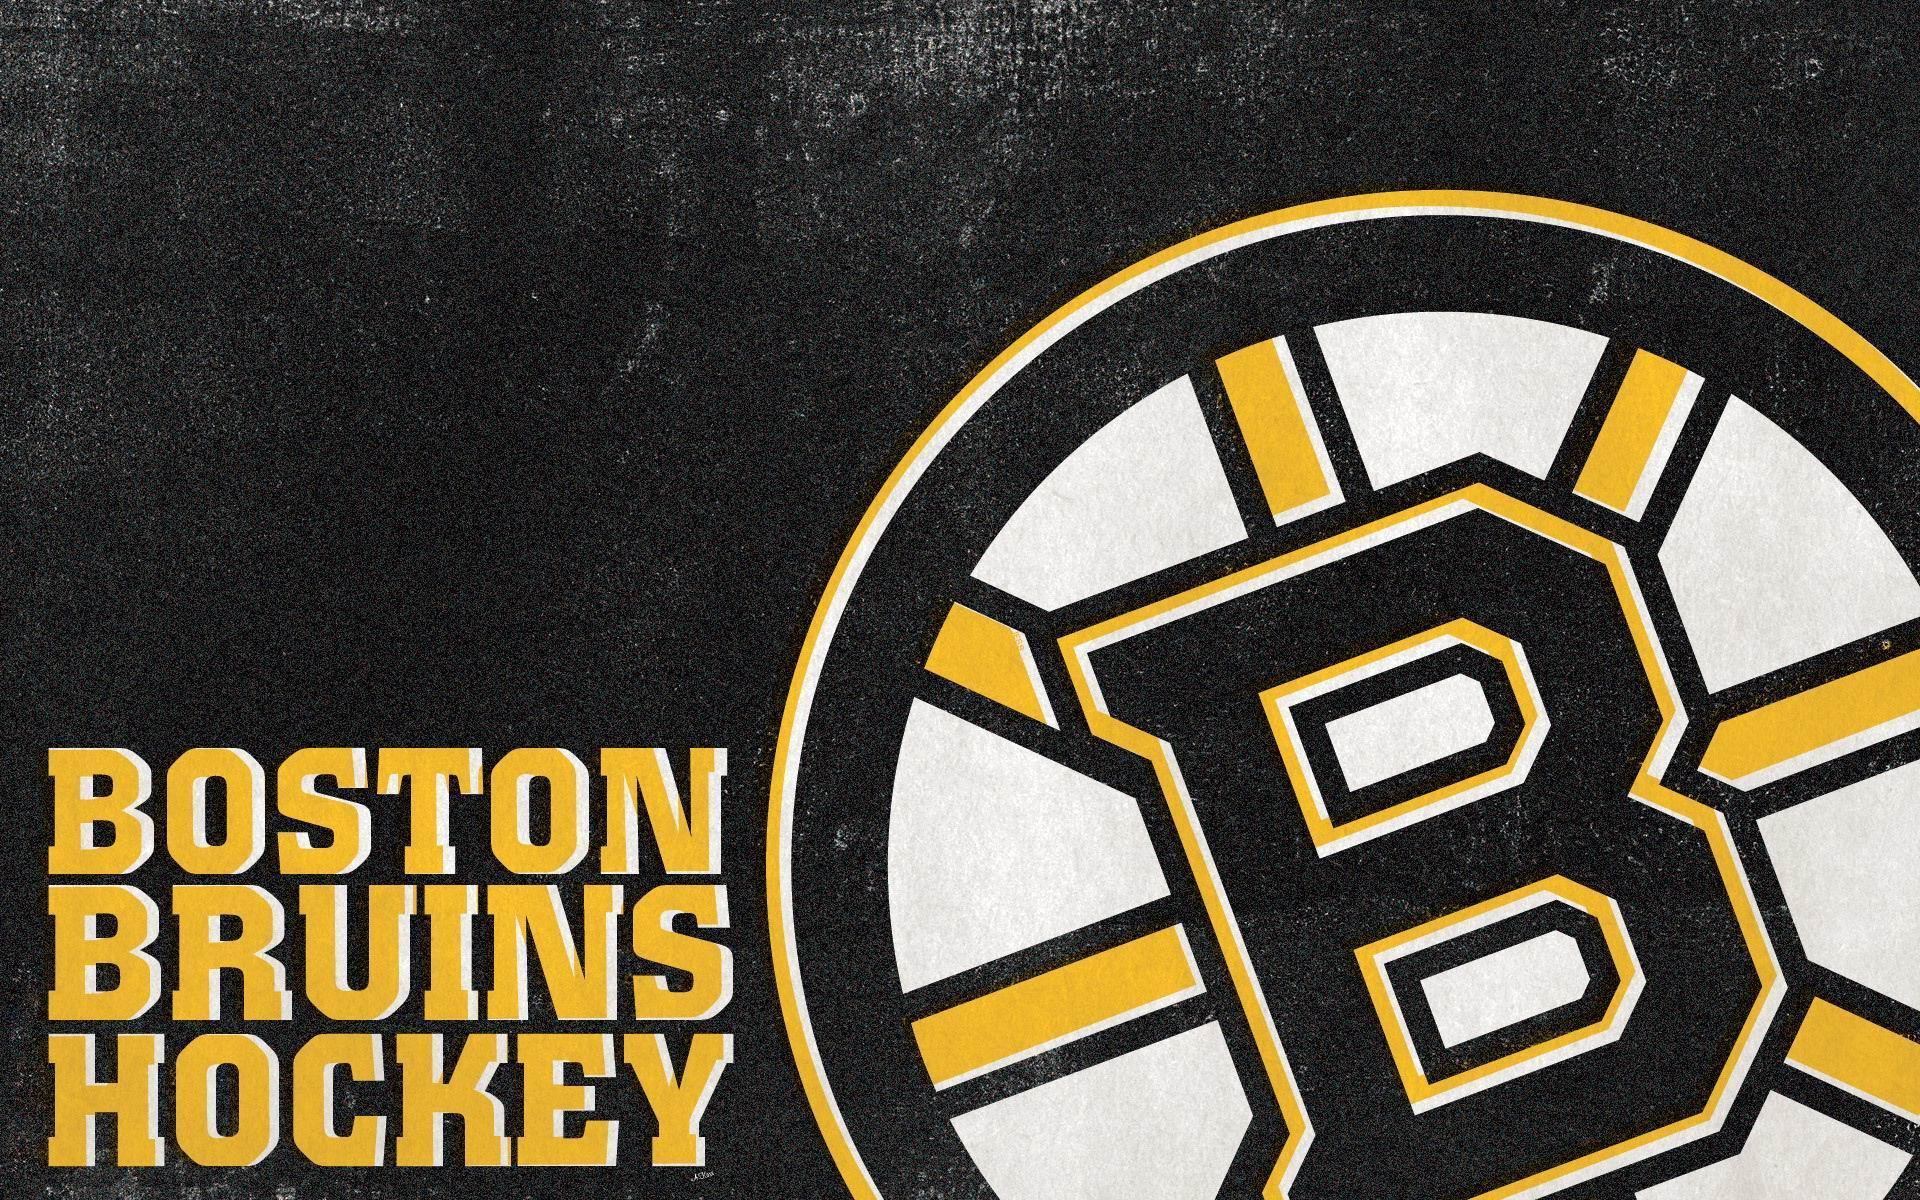 Boston Bruins Wallpapers - Full HD wallpaper search